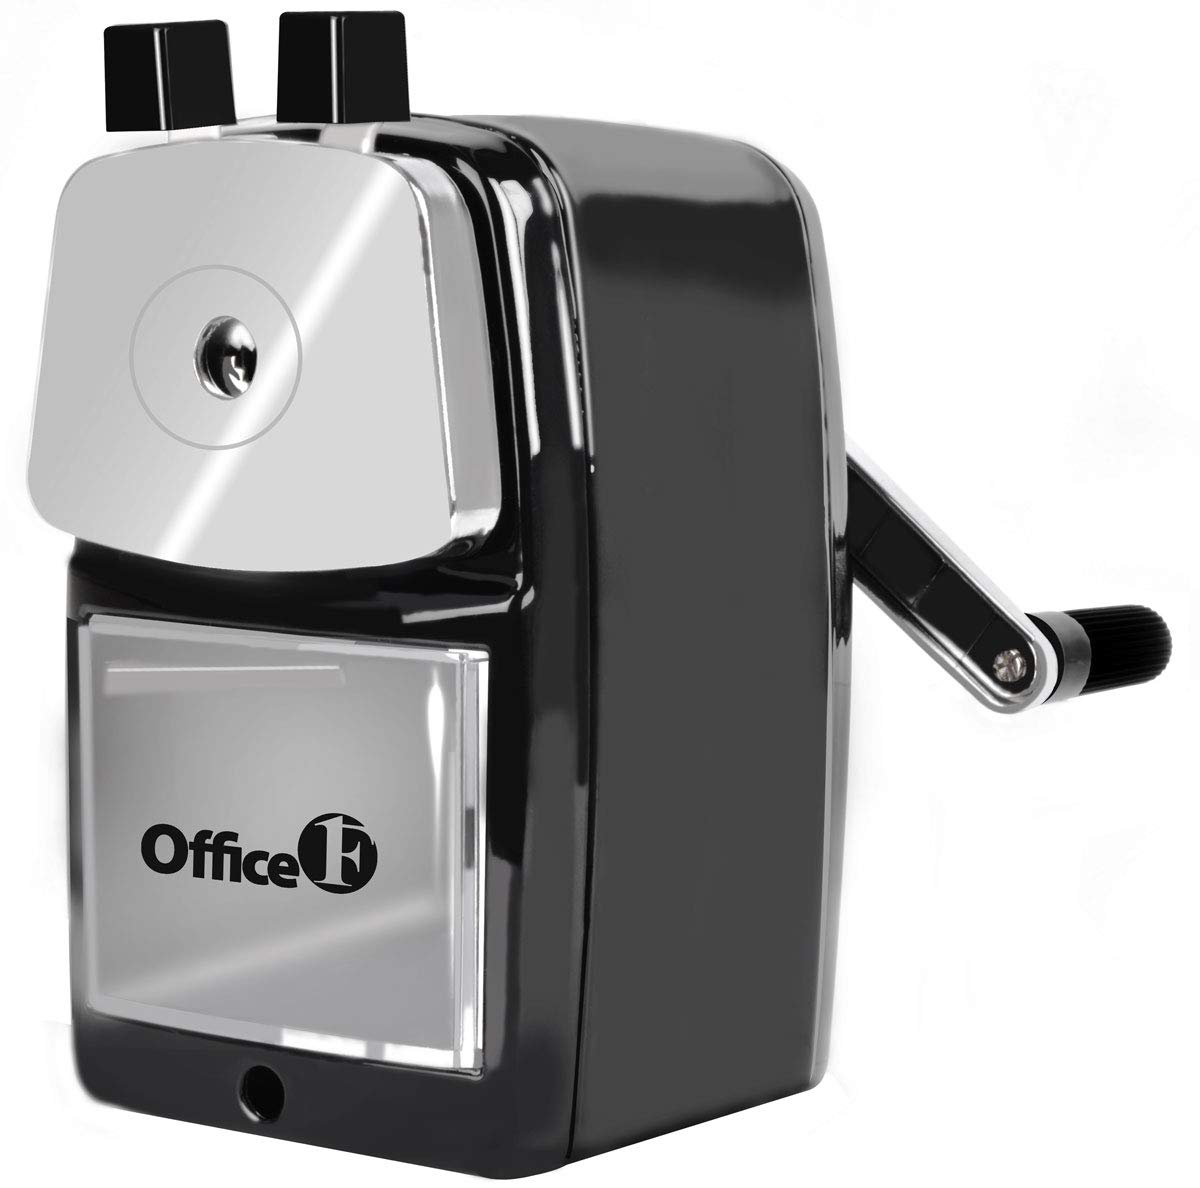 OFFICE1ST Manual Pencil Sharpener, Desk-Mount Portable Pencil Sharpener, Metal Body, Heavy-duty Helical Steel Blade, Suitable for Classroom, Office and Home (Black) by OFFICE1ST